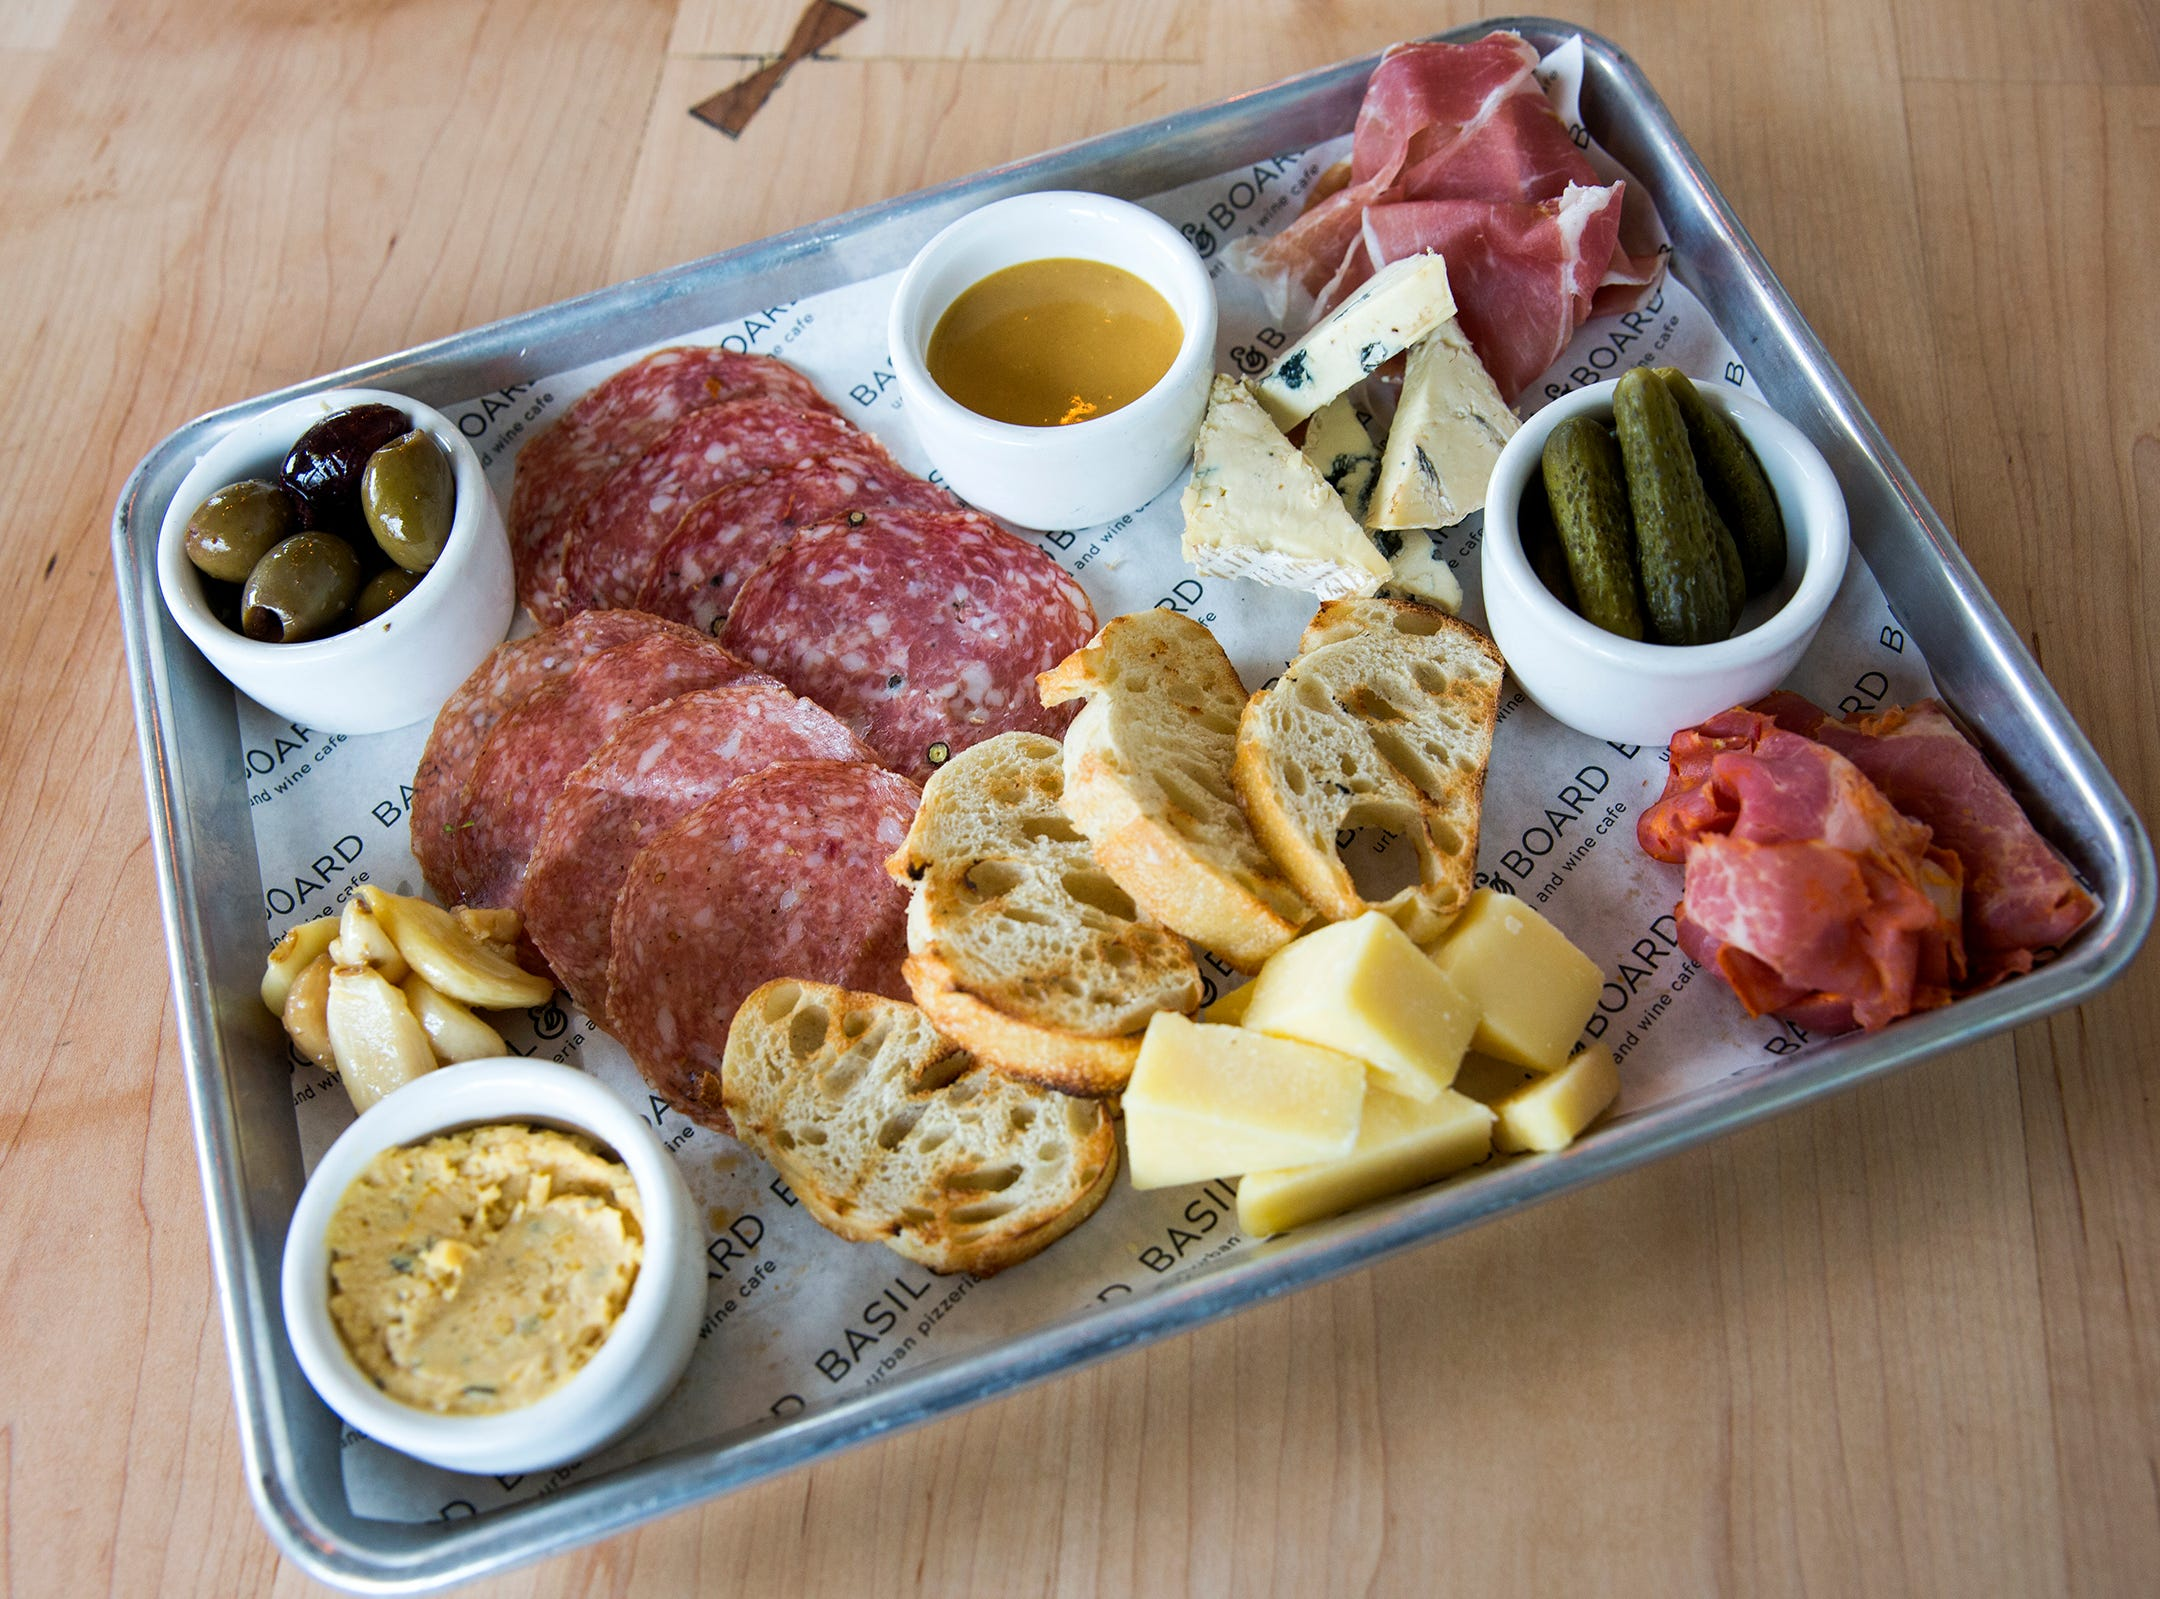 A small Butcher's Board, available during social hours from 3 p.m. to 5 p.m. and 7 p.m. to close, is pictured at Basil & Board in Salem on Tuesday, Feb. 26, 2019. The board includes a variety of craft meats and cheeses paired with rosemary hummus and greek olives.